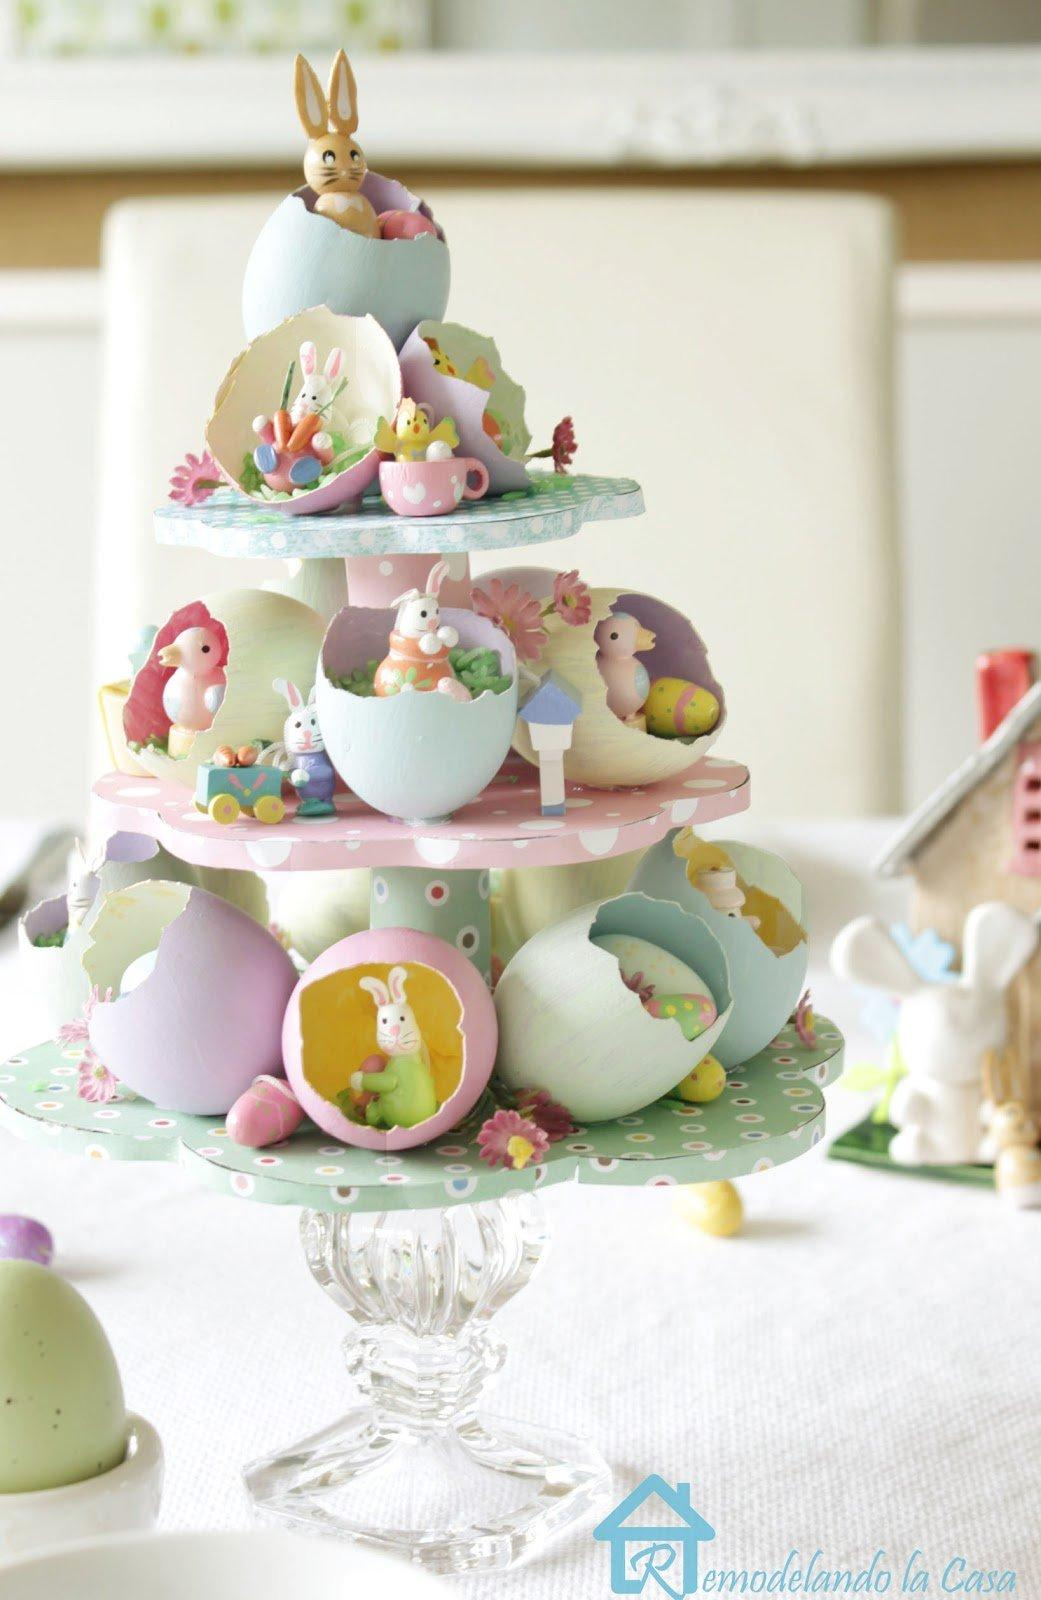 Christian Easter Cake Decorating Ideas